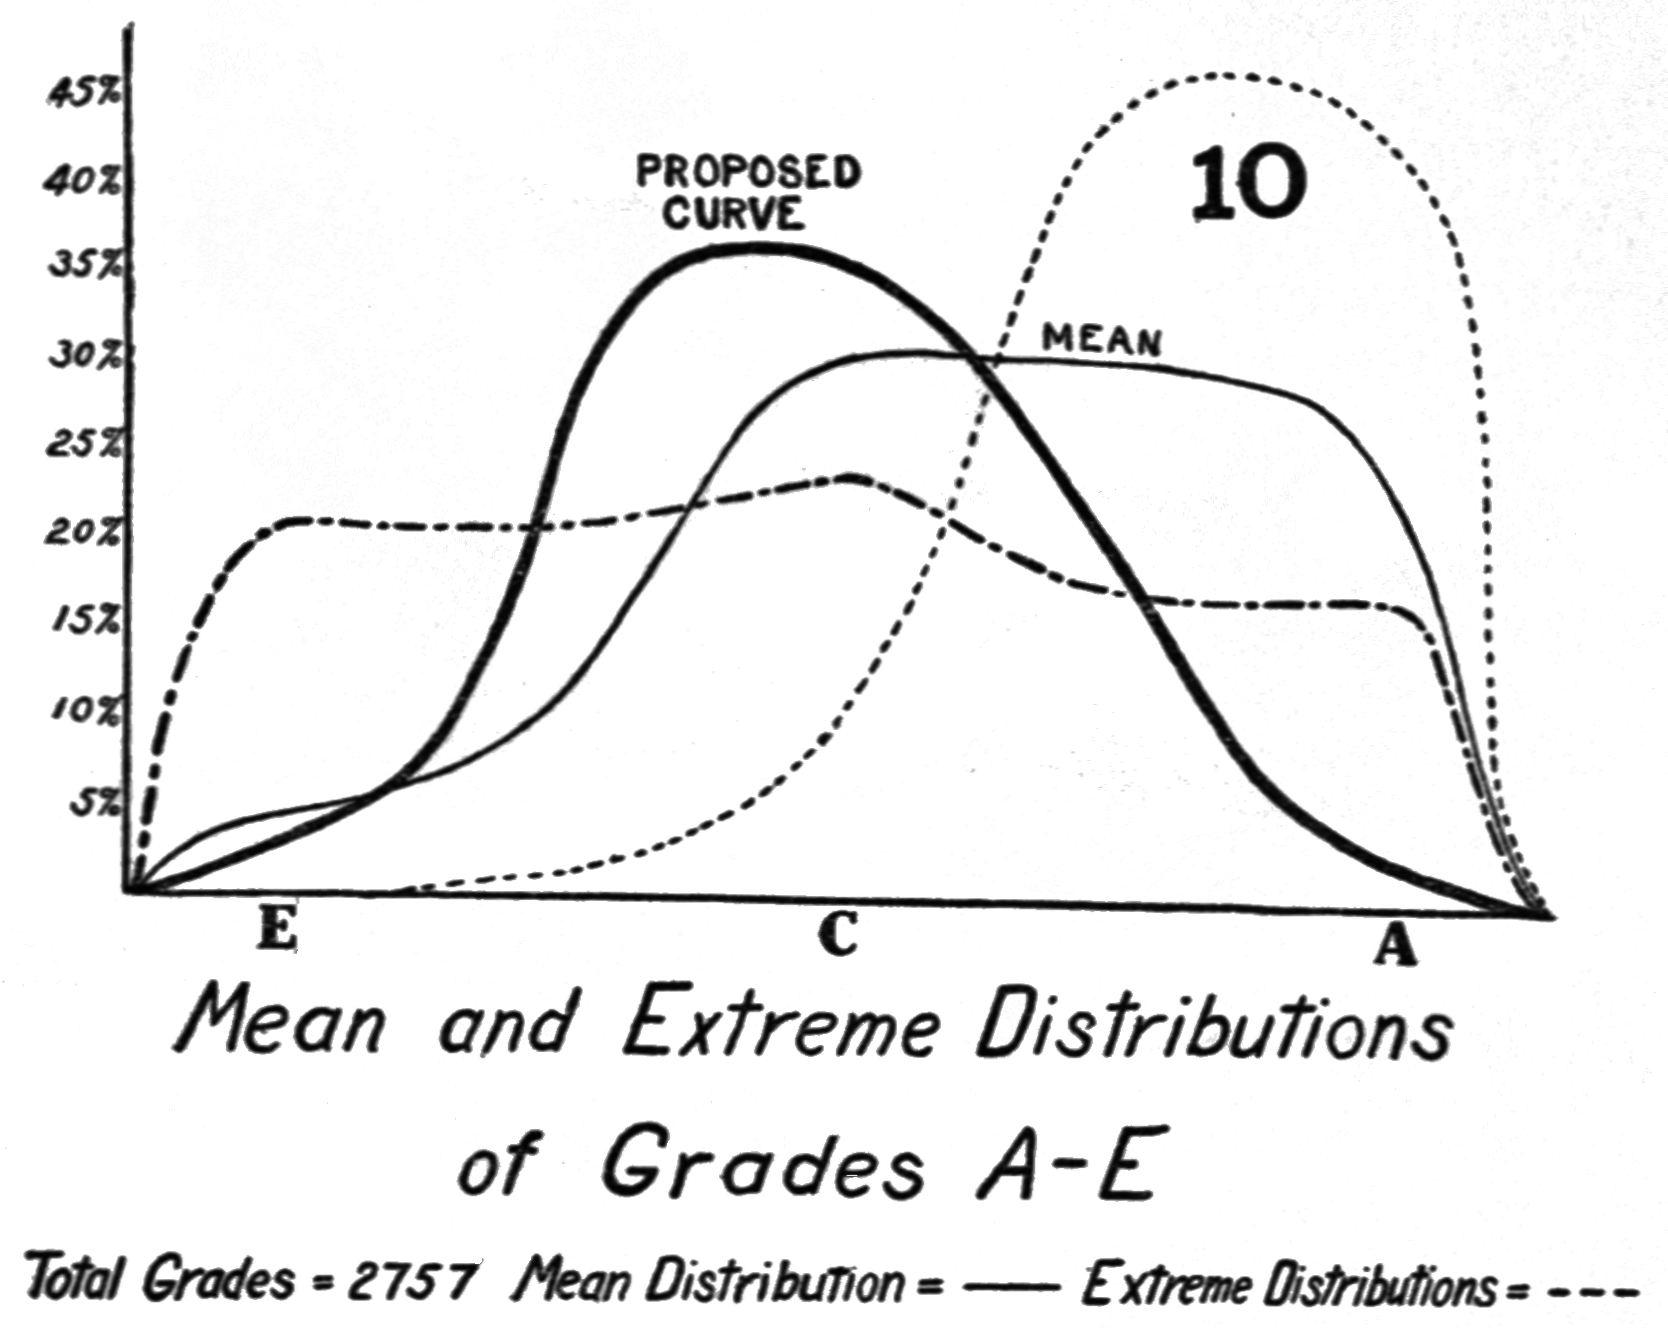 PSM V78 D409 Mean and extreme distributions of grades a and e 10.png